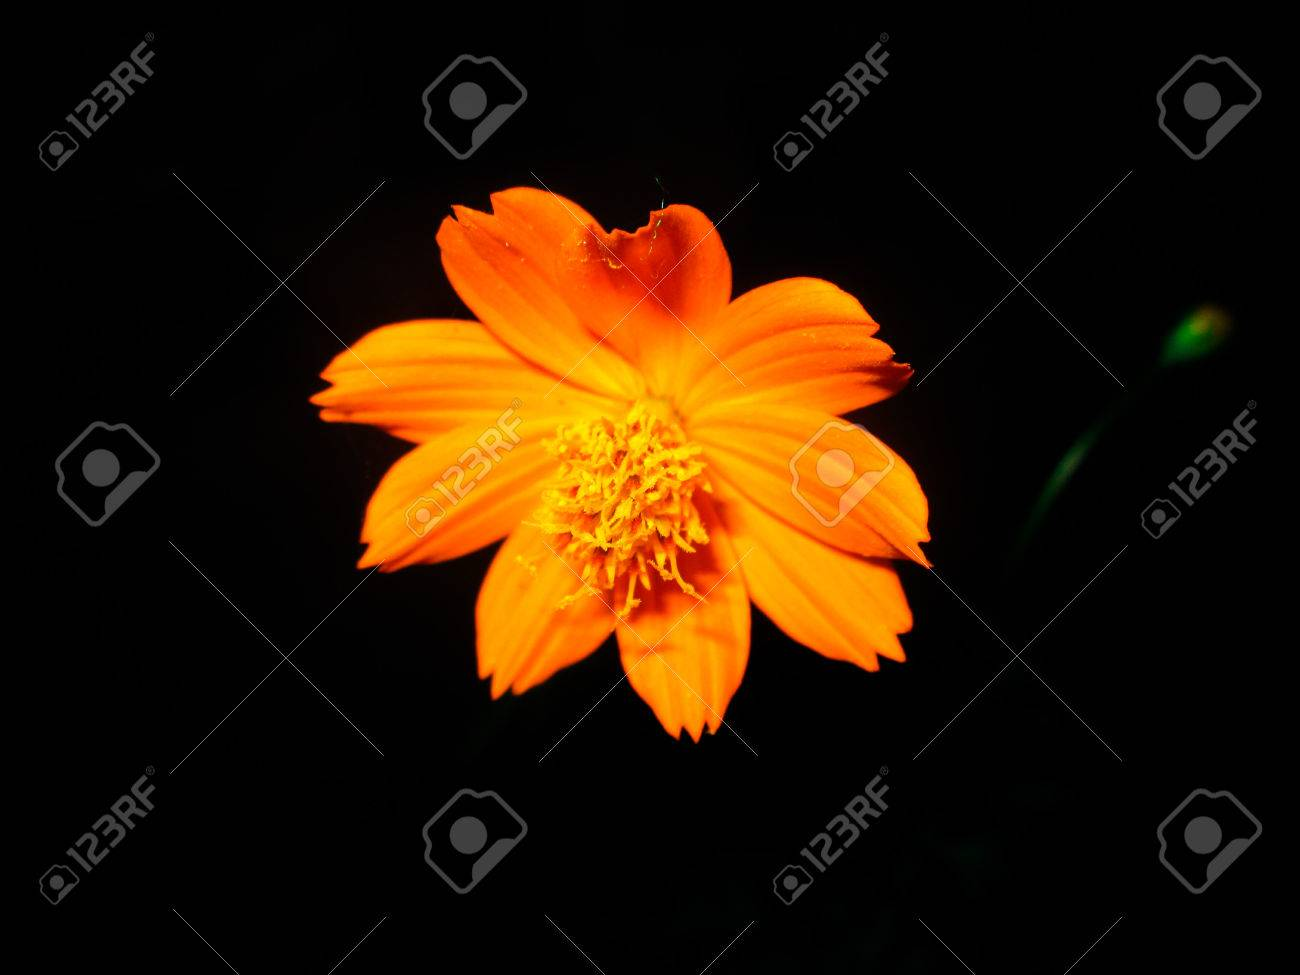 Most Inspiring Wallpaper Night Flower - 84791007-yellow-flower-on-night-dark-night-flawer-wallpaper  Photograph-16443.jpg